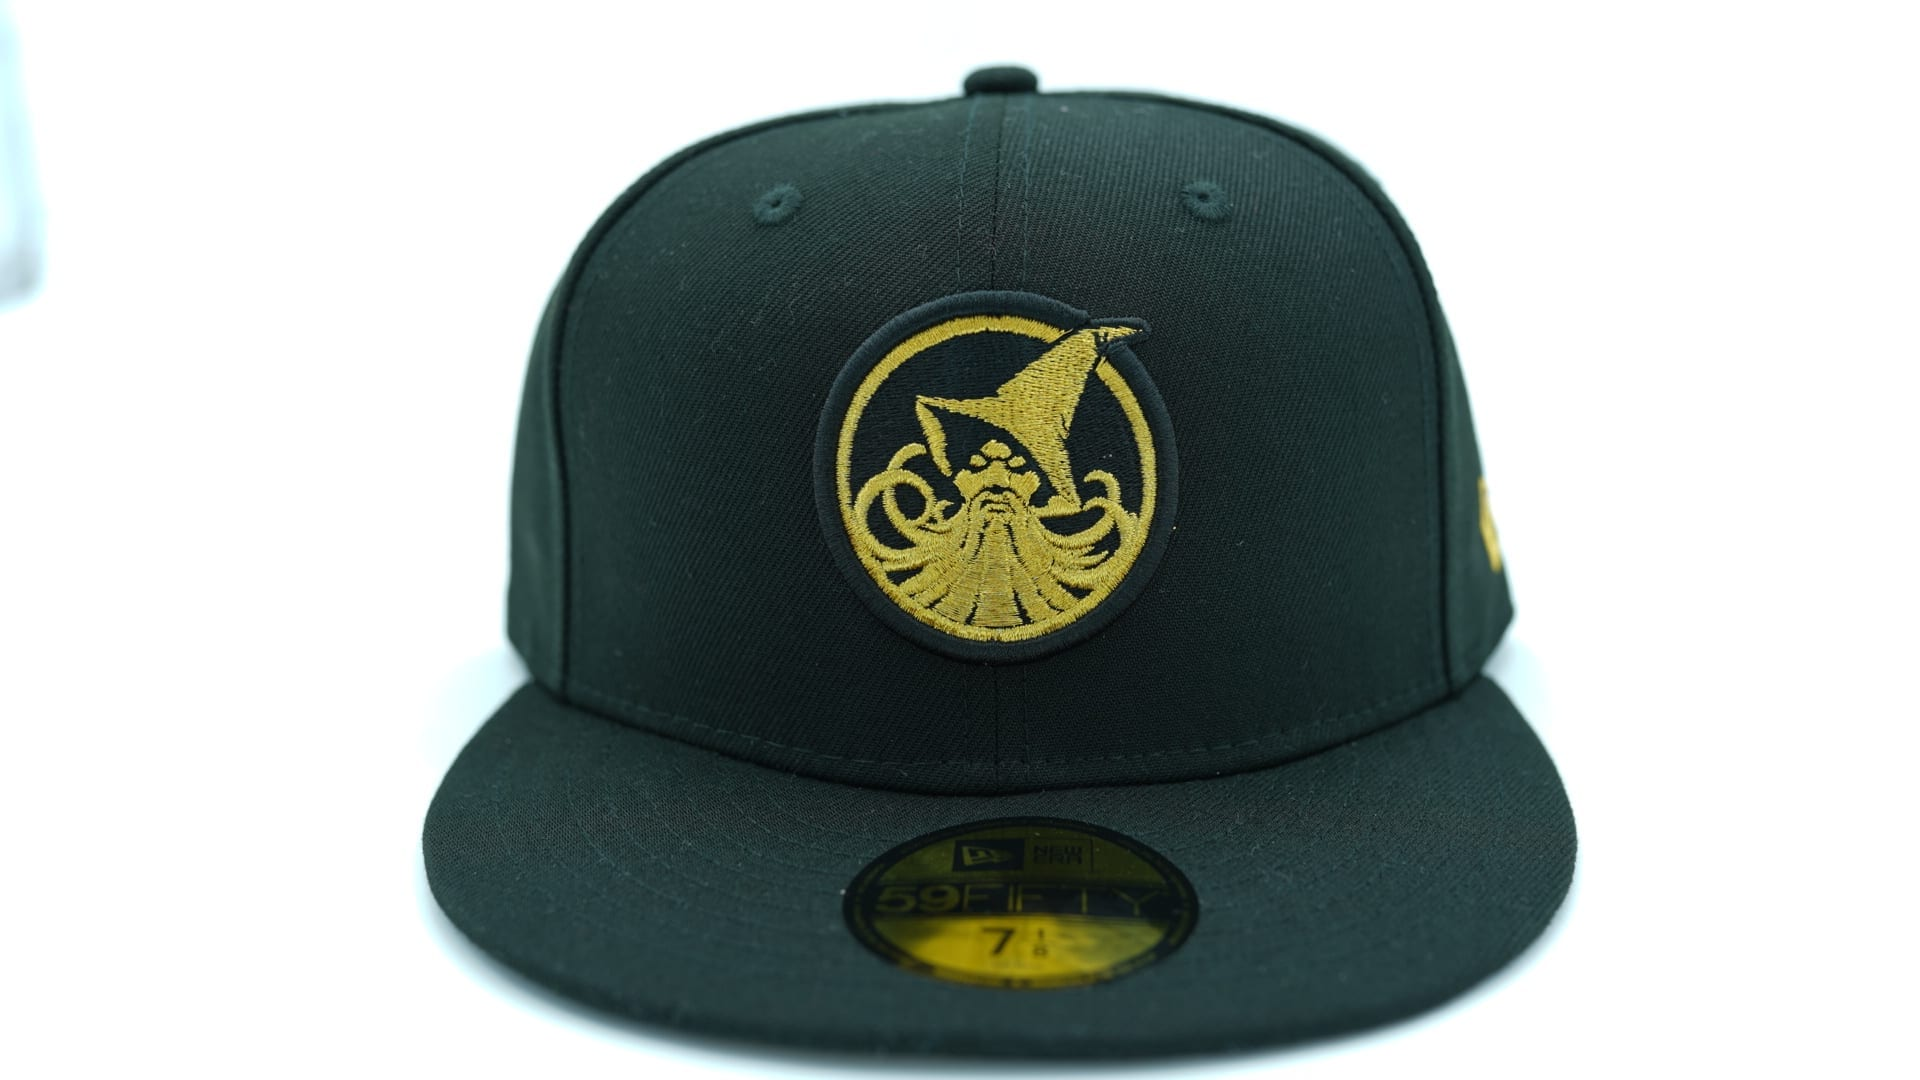 low profile baseball hats fitted cap team cup era